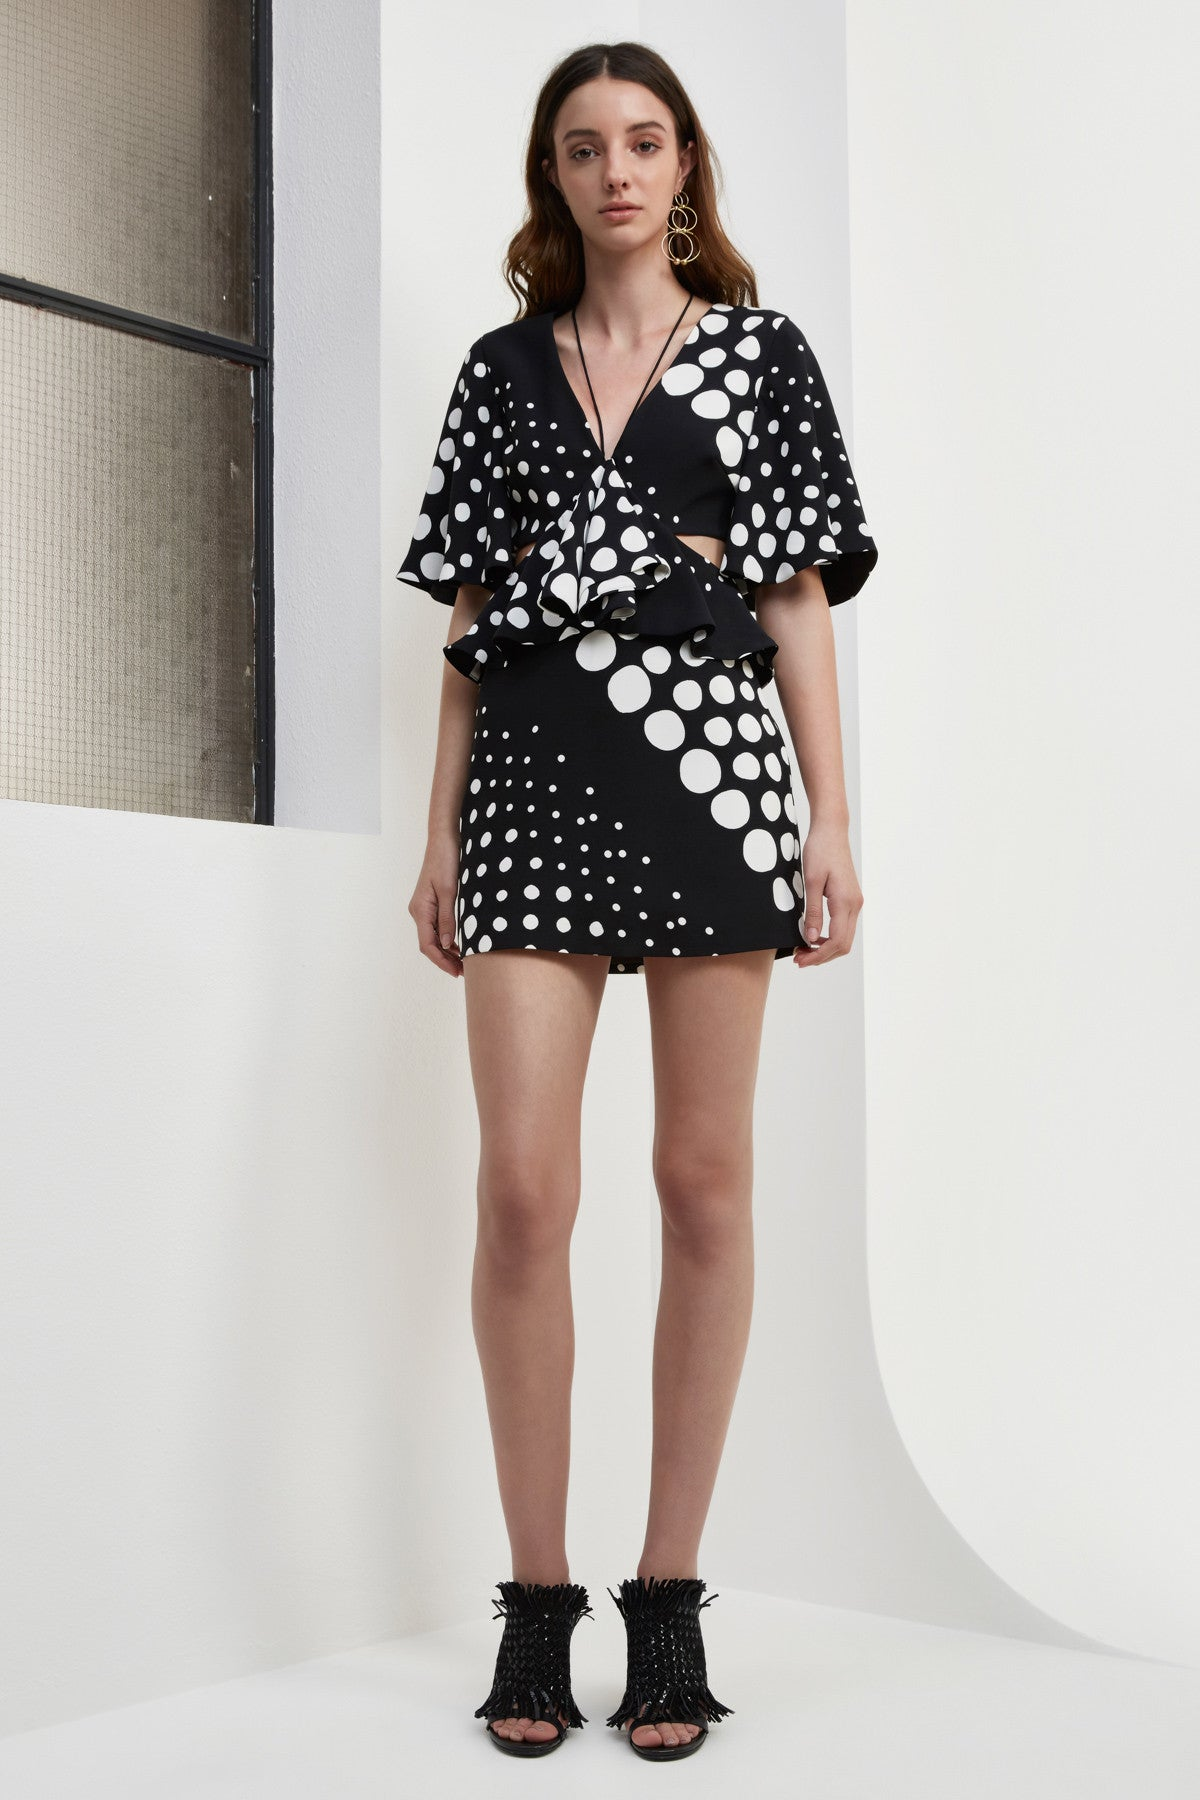 LOSE CONTROL MINI DRESS black and white spot